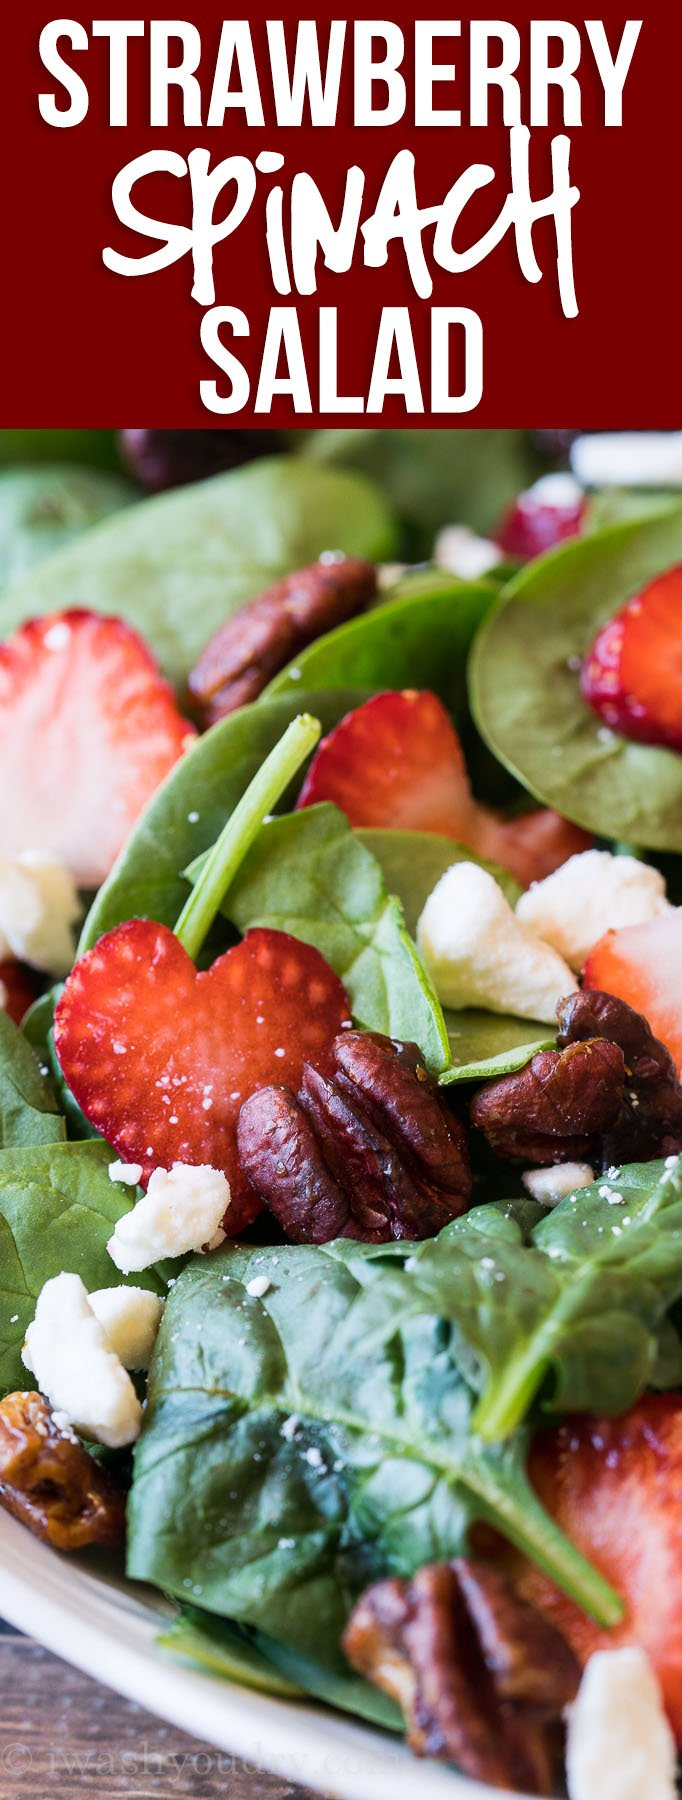 OMG! This Strawberry Spinach Salad with candied pecans was out of this world good! So quick and easy to make too!